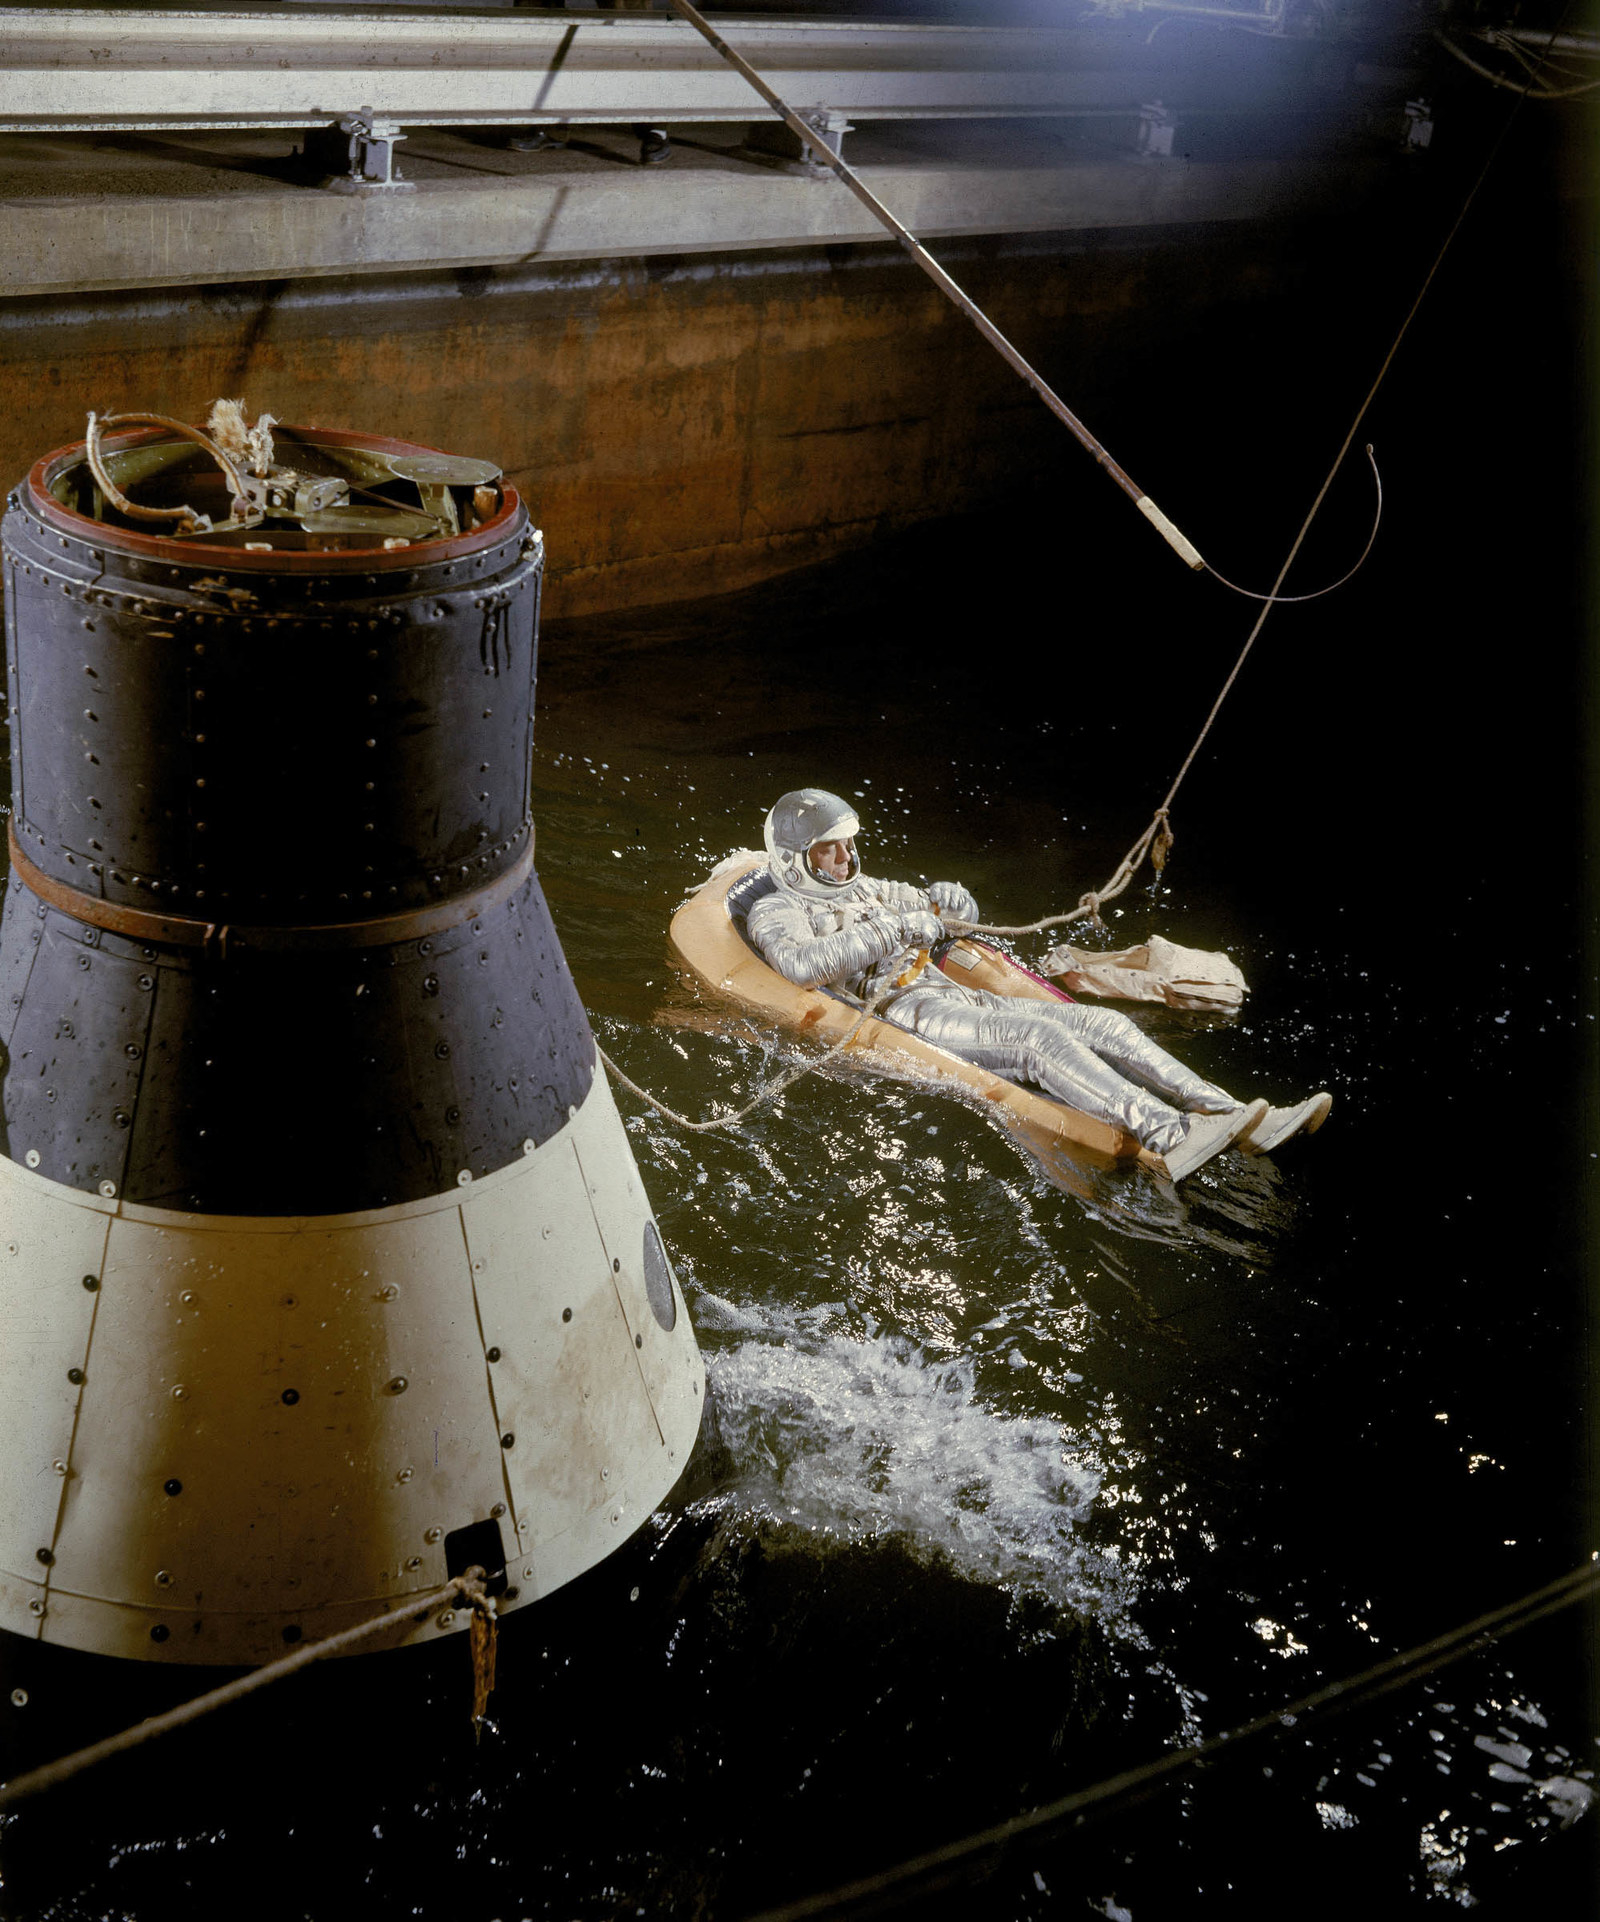 1959 An unidentified Project Mercury astronaut trains in a water tank at Langley Air Force Base, Hampton, Virginia. He is likely practising to escape from the capsule after splashdown.